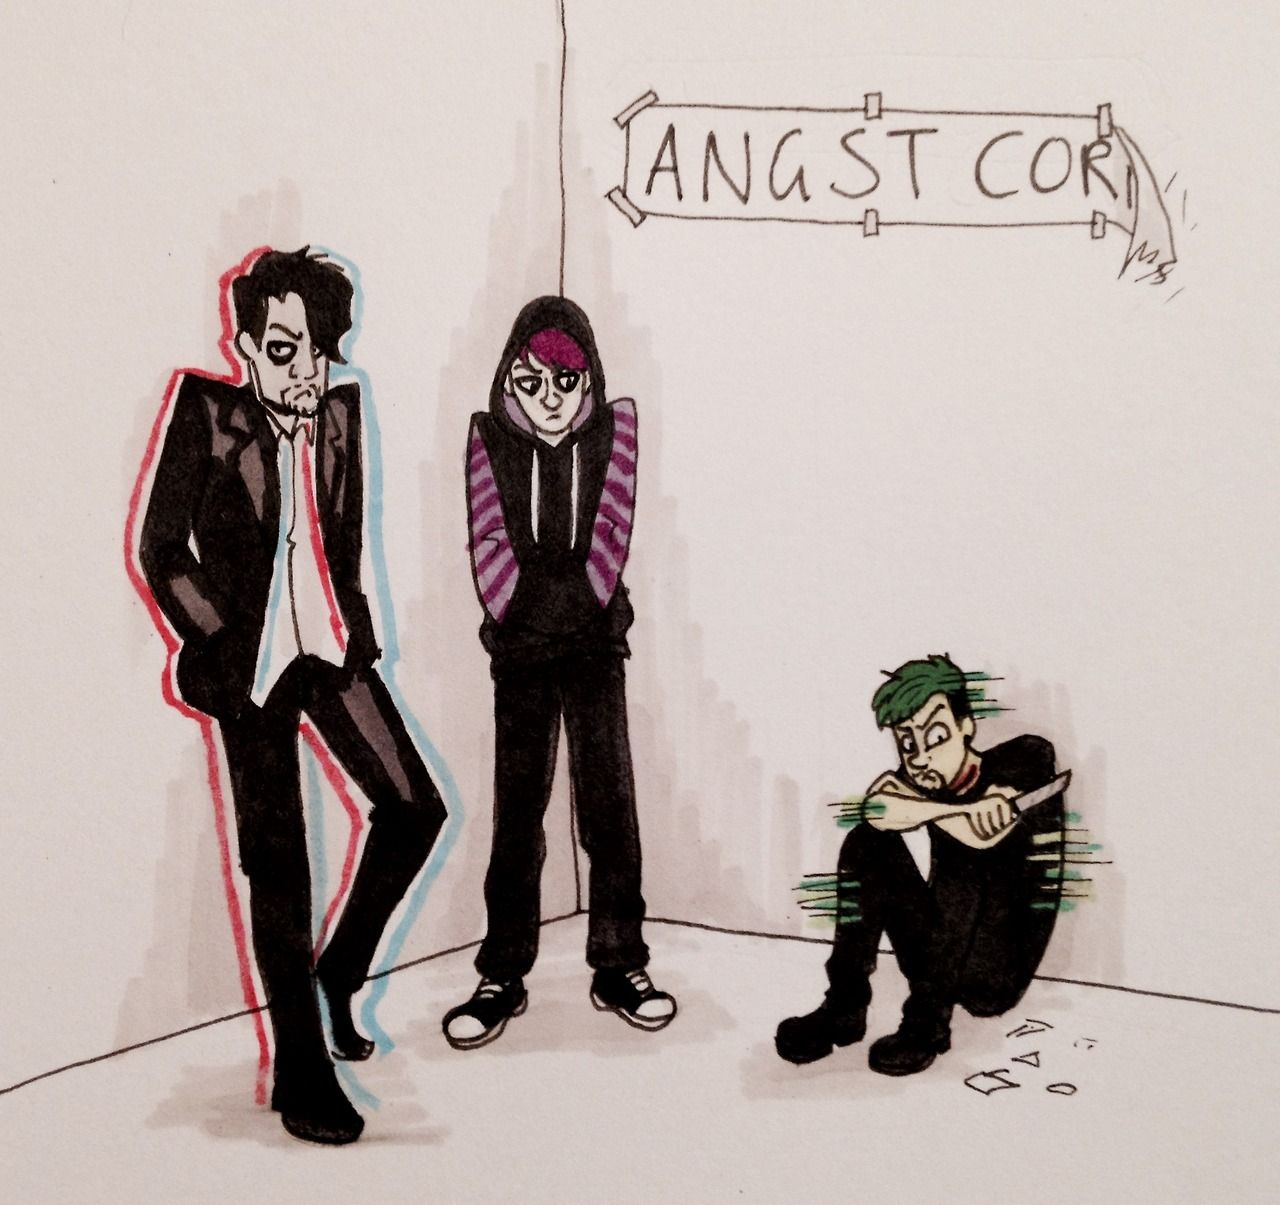 """Sketch 329: """"Some egos just need some time out in the angst corner"""